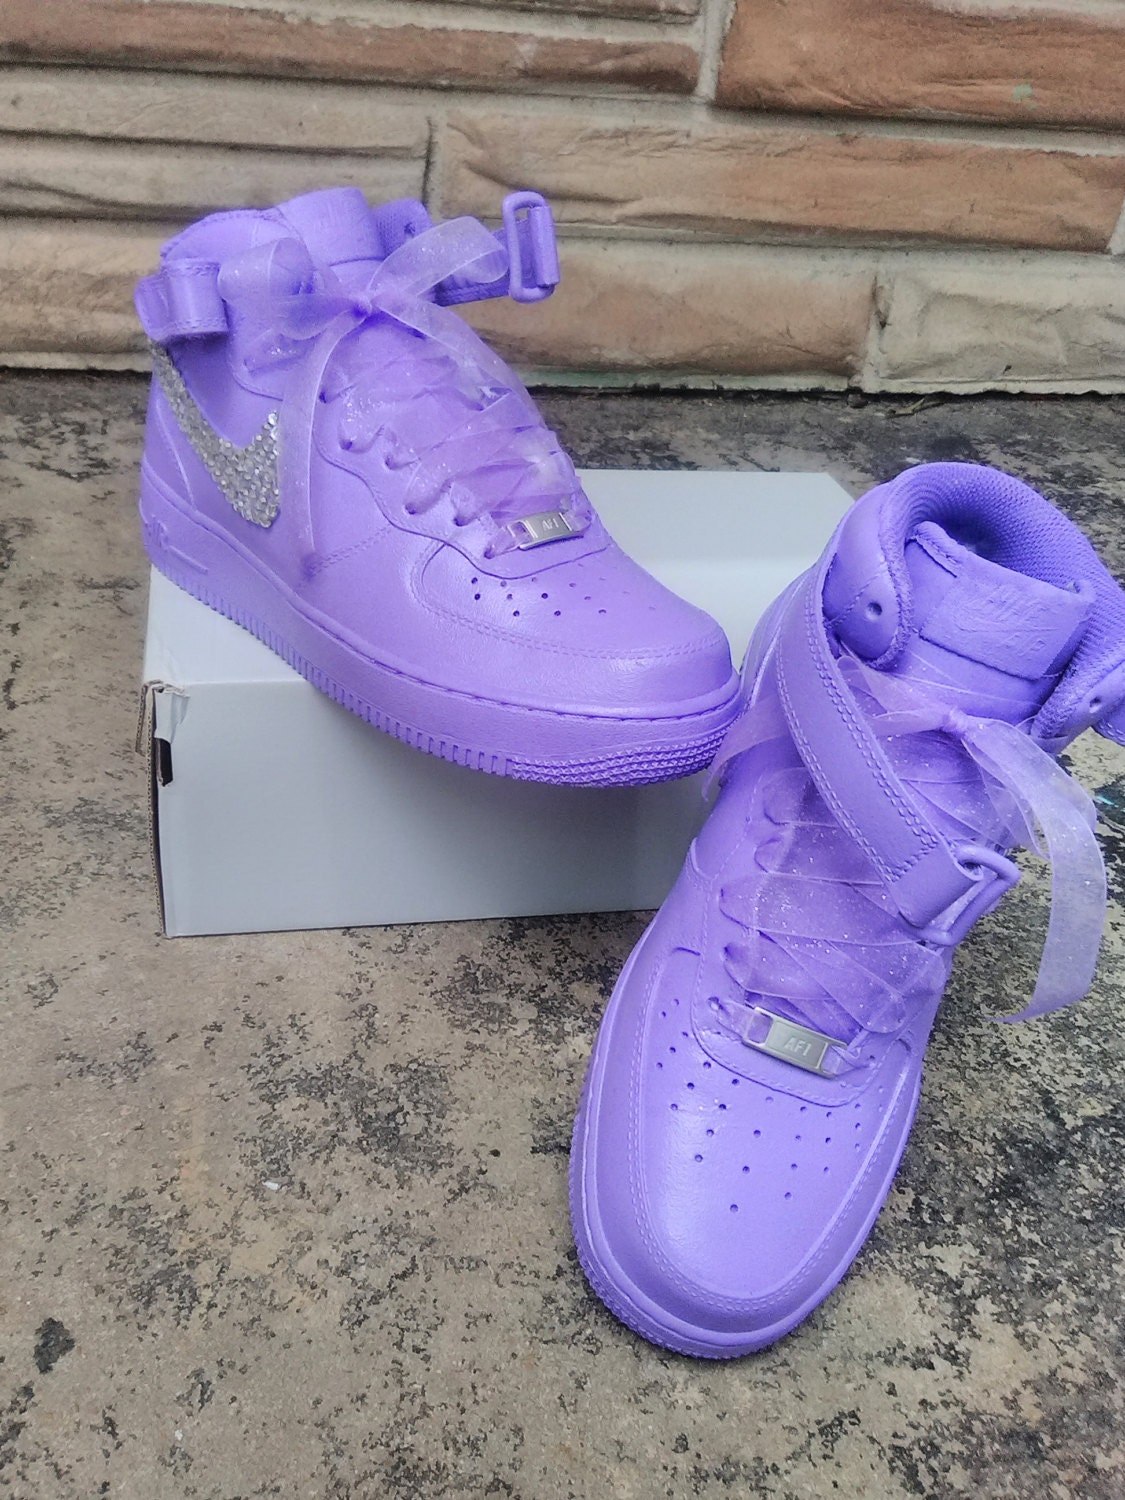 Bling Nike Air Force Ones c4cac6a7a